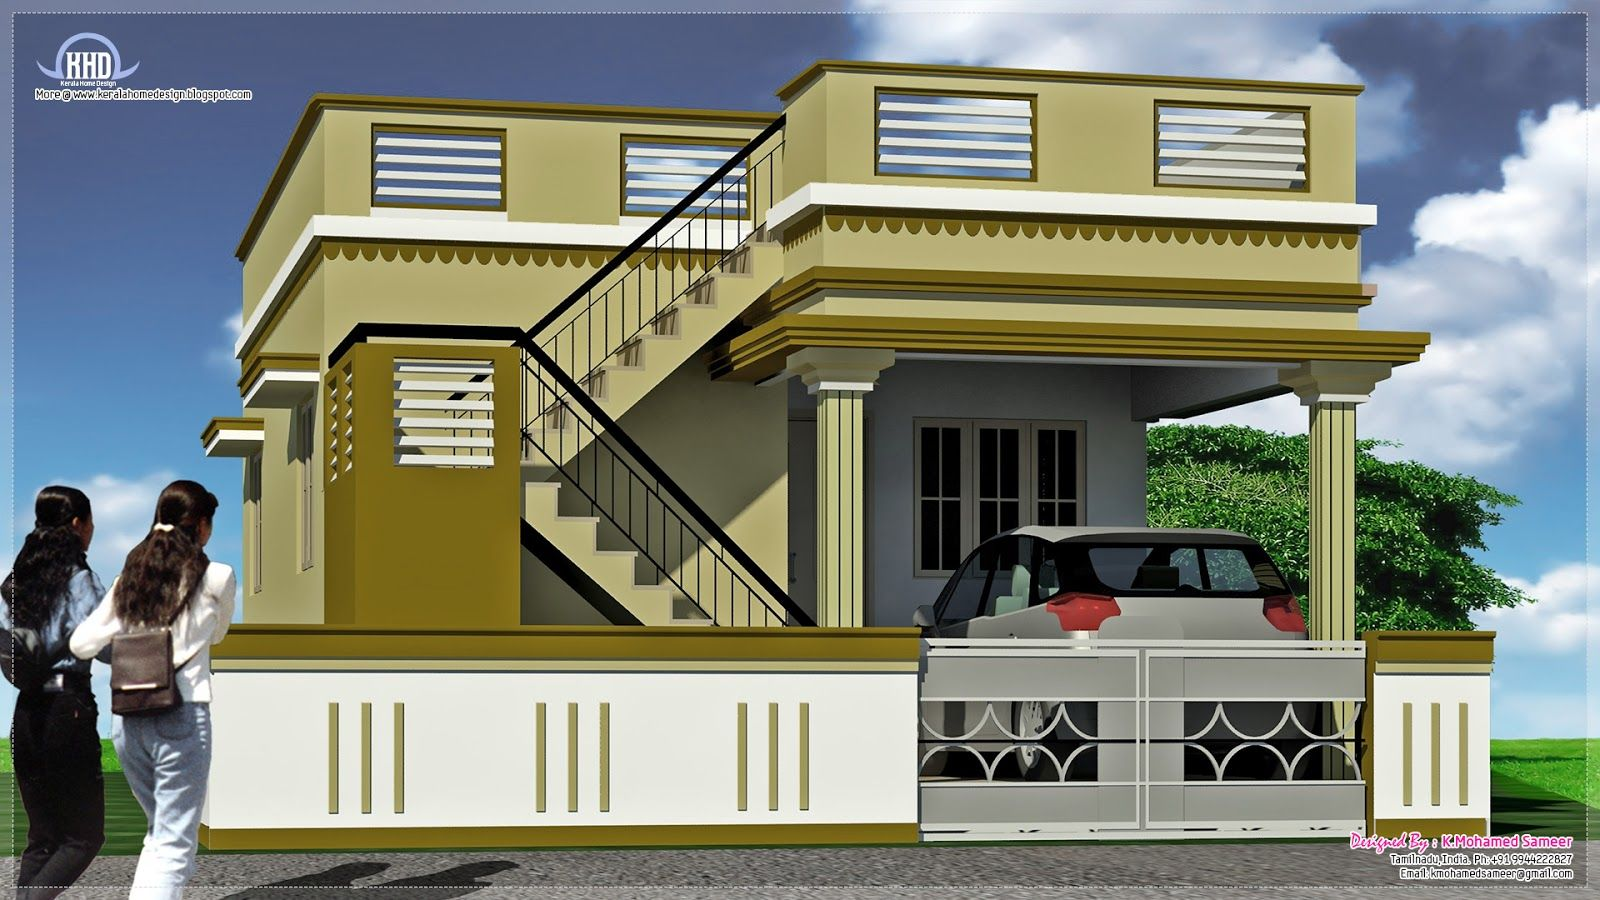 South indian house exterior designs house design plans Indian small house design pictures